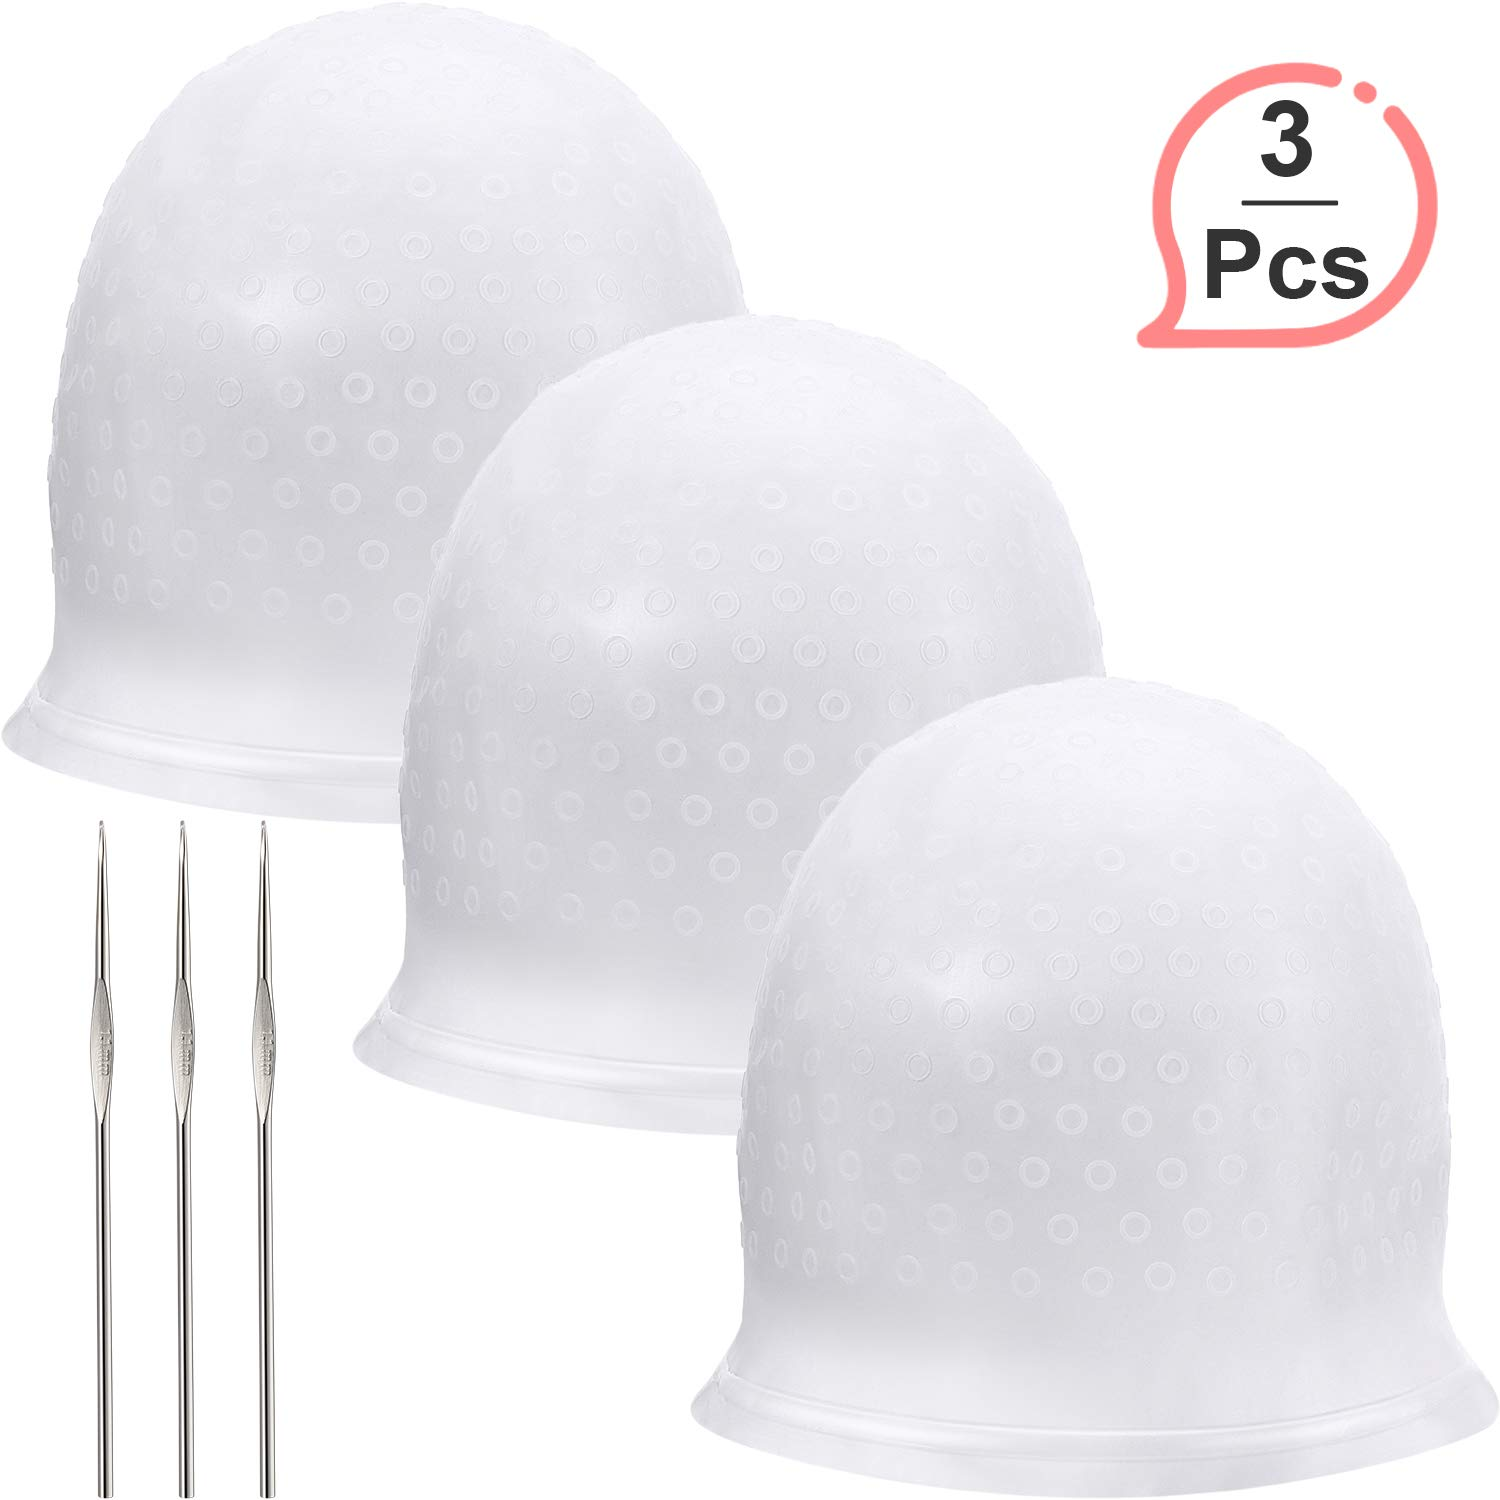 3 Sets Silicone Highlight Cap Reusable Highlight Hair Cap Salon Hair Coloring Dye Cap with Hooks for Women Girls Dyeing Hair by WILLBOND